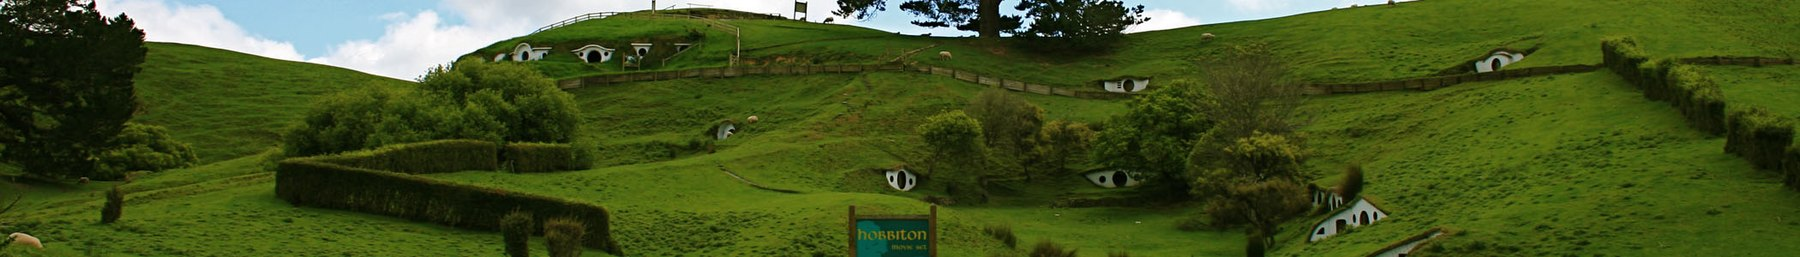 Hobbiton at Matamata